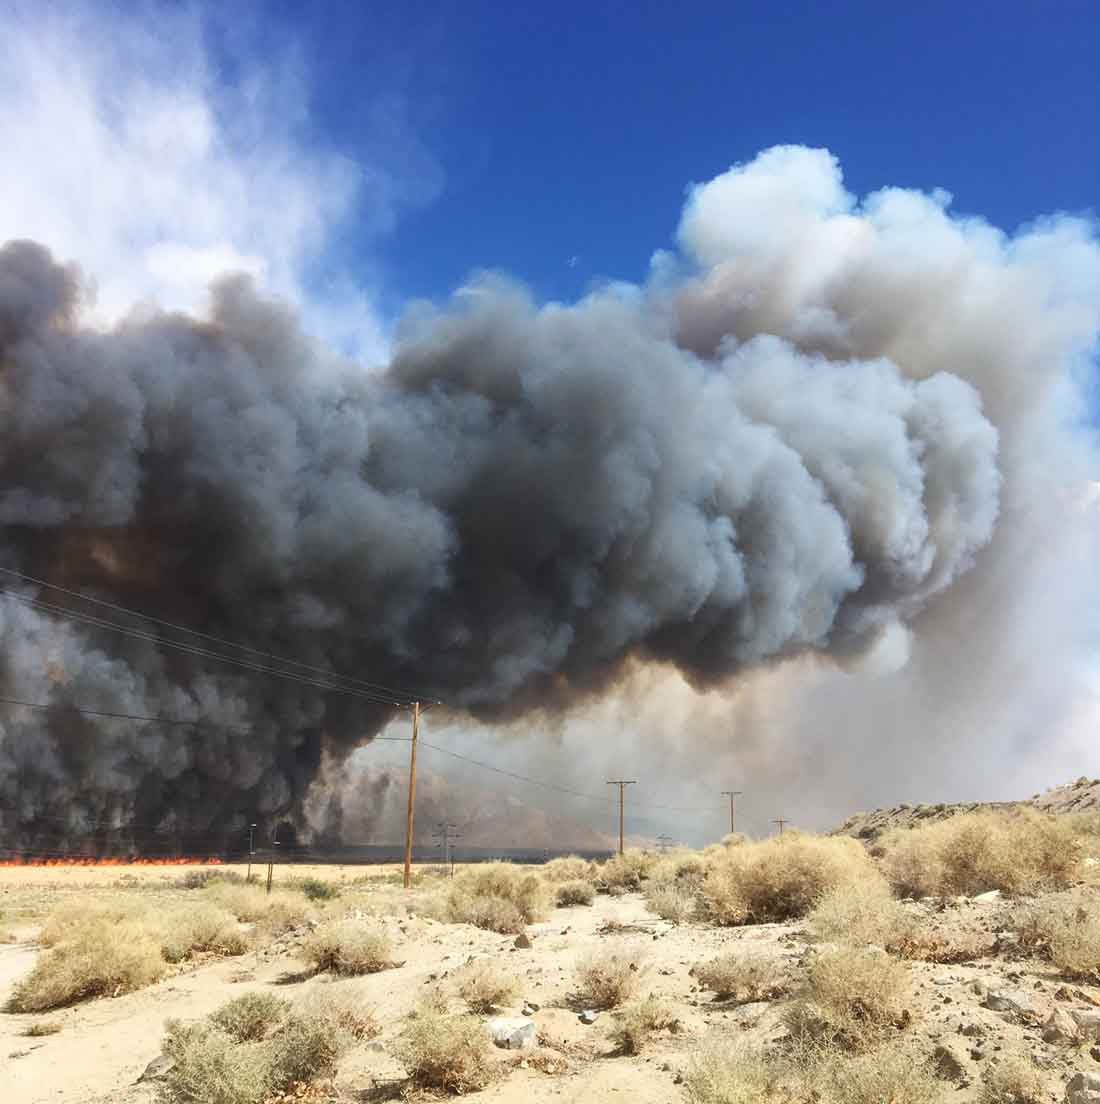 Moffat Fire burns hundreds of acres north of Lone Pine, CA